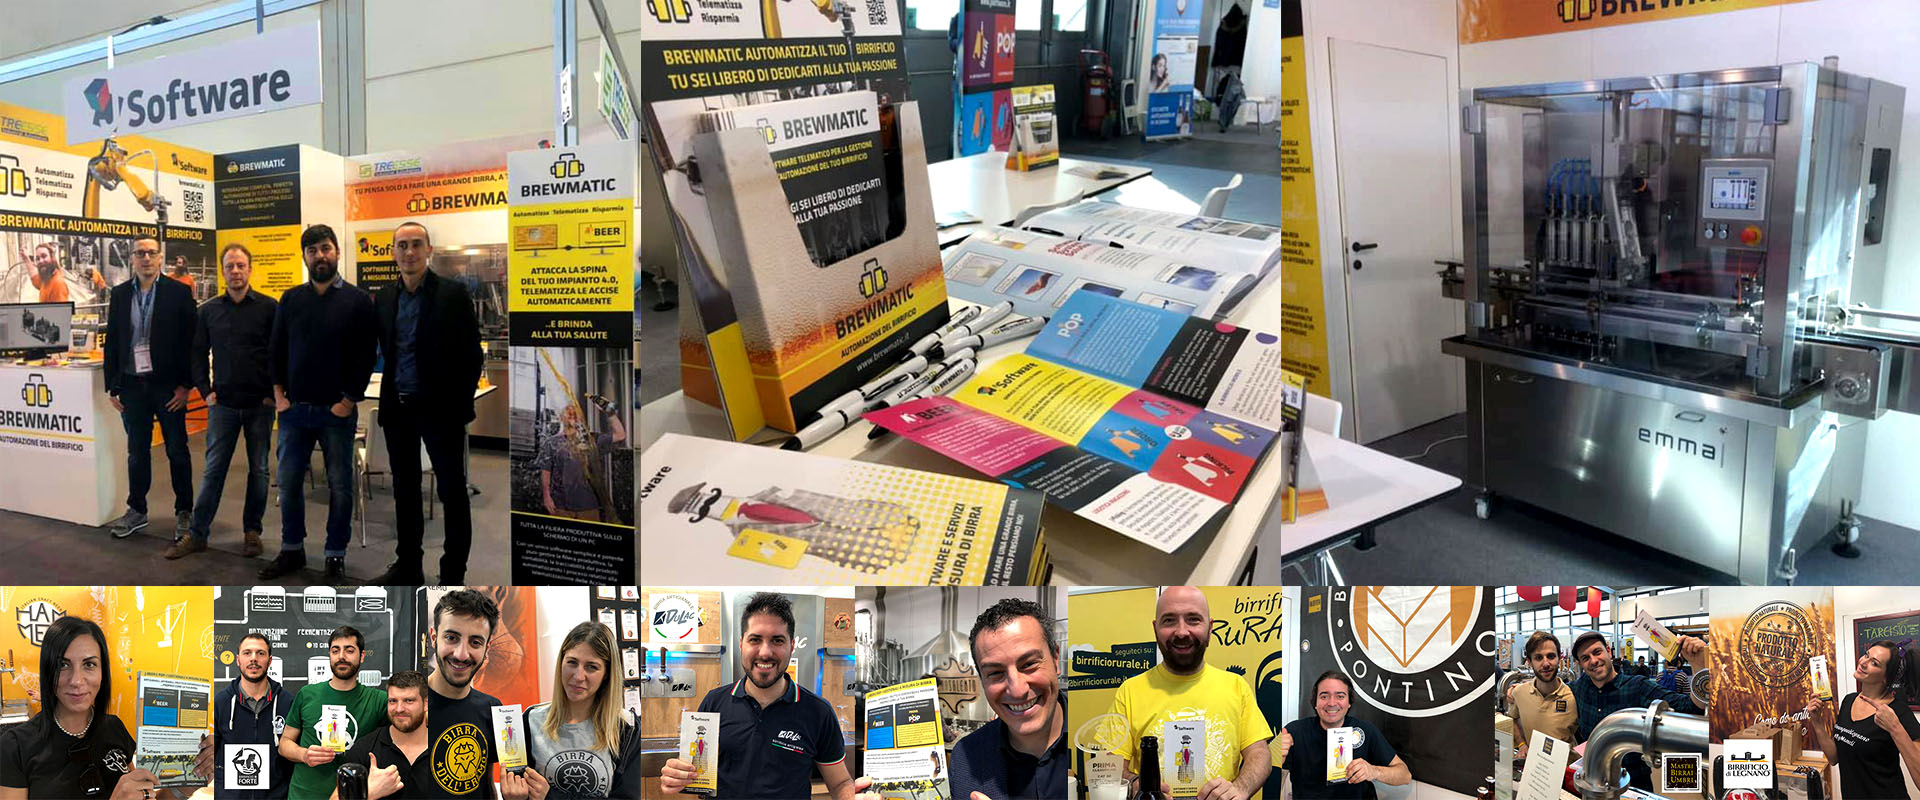 J-Software a BeerAttraction 2019